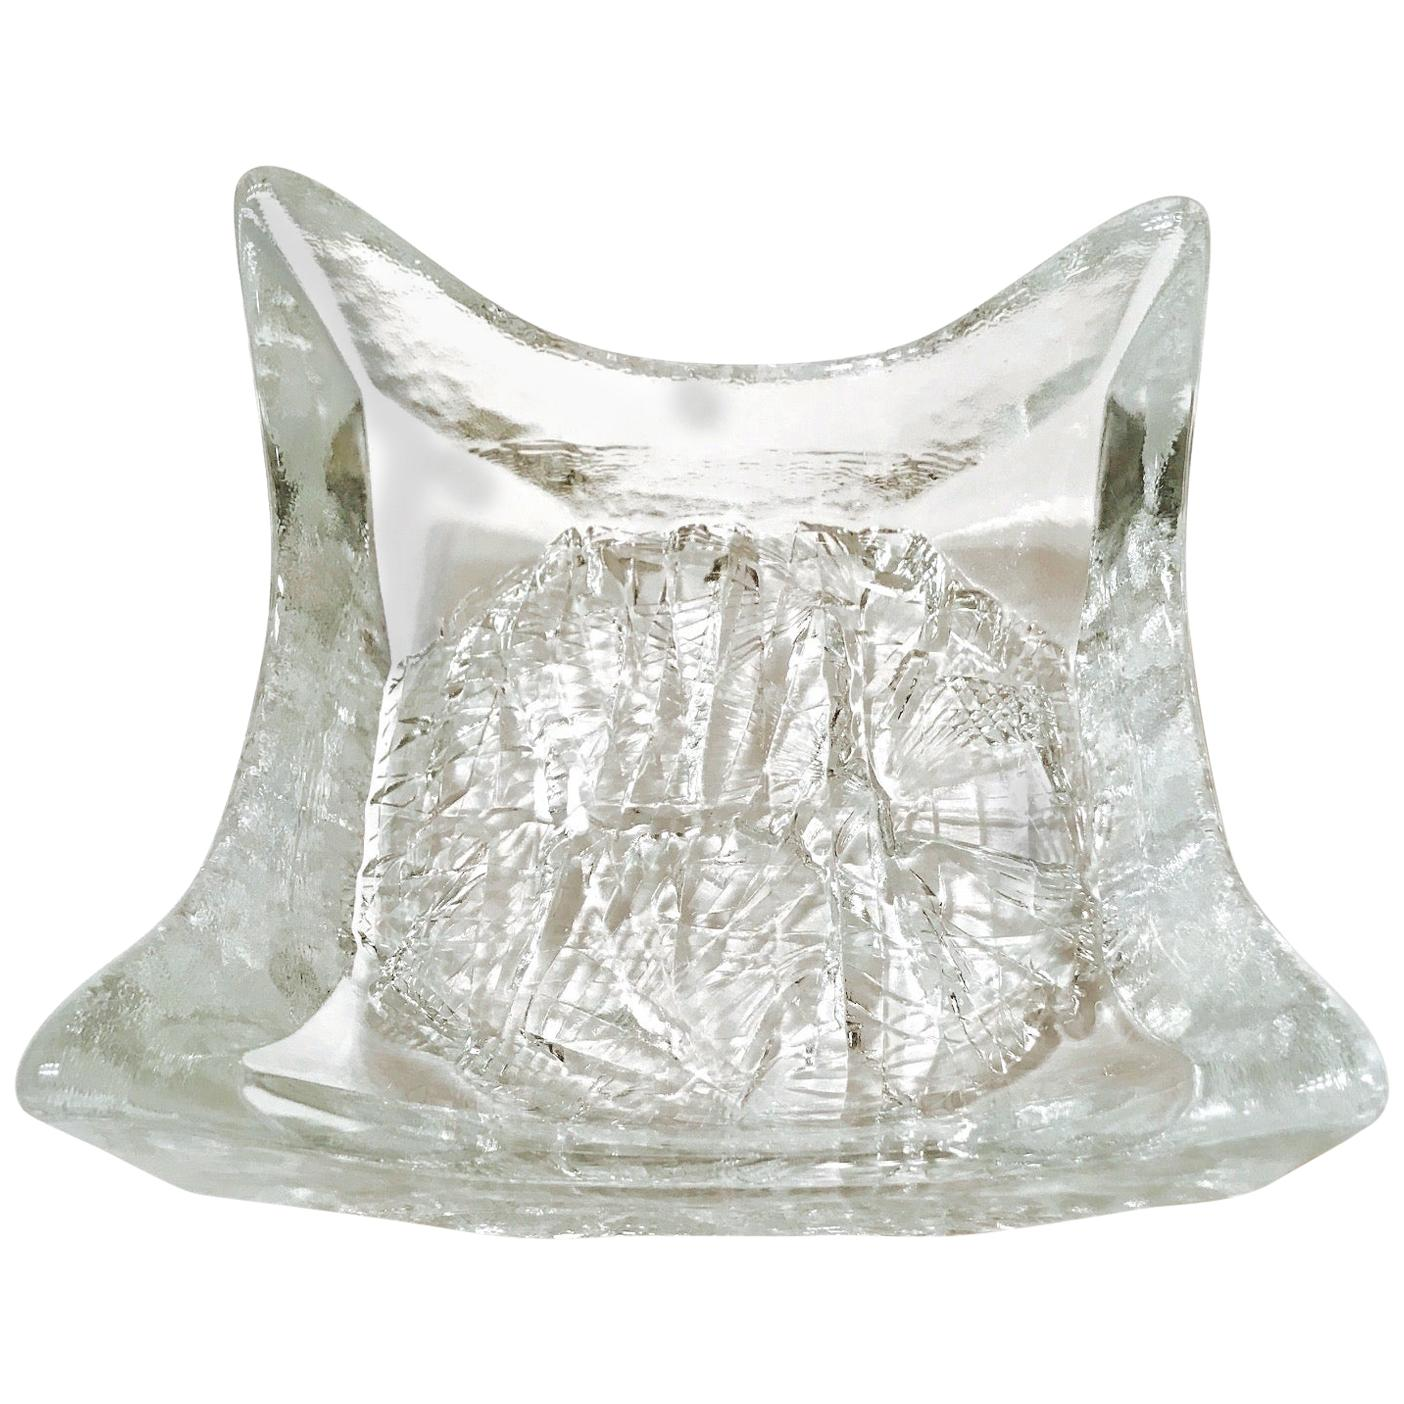 1970s Abstract Blown Glass Bowl with Icicle Design by Tapio Wirkkala, Finland